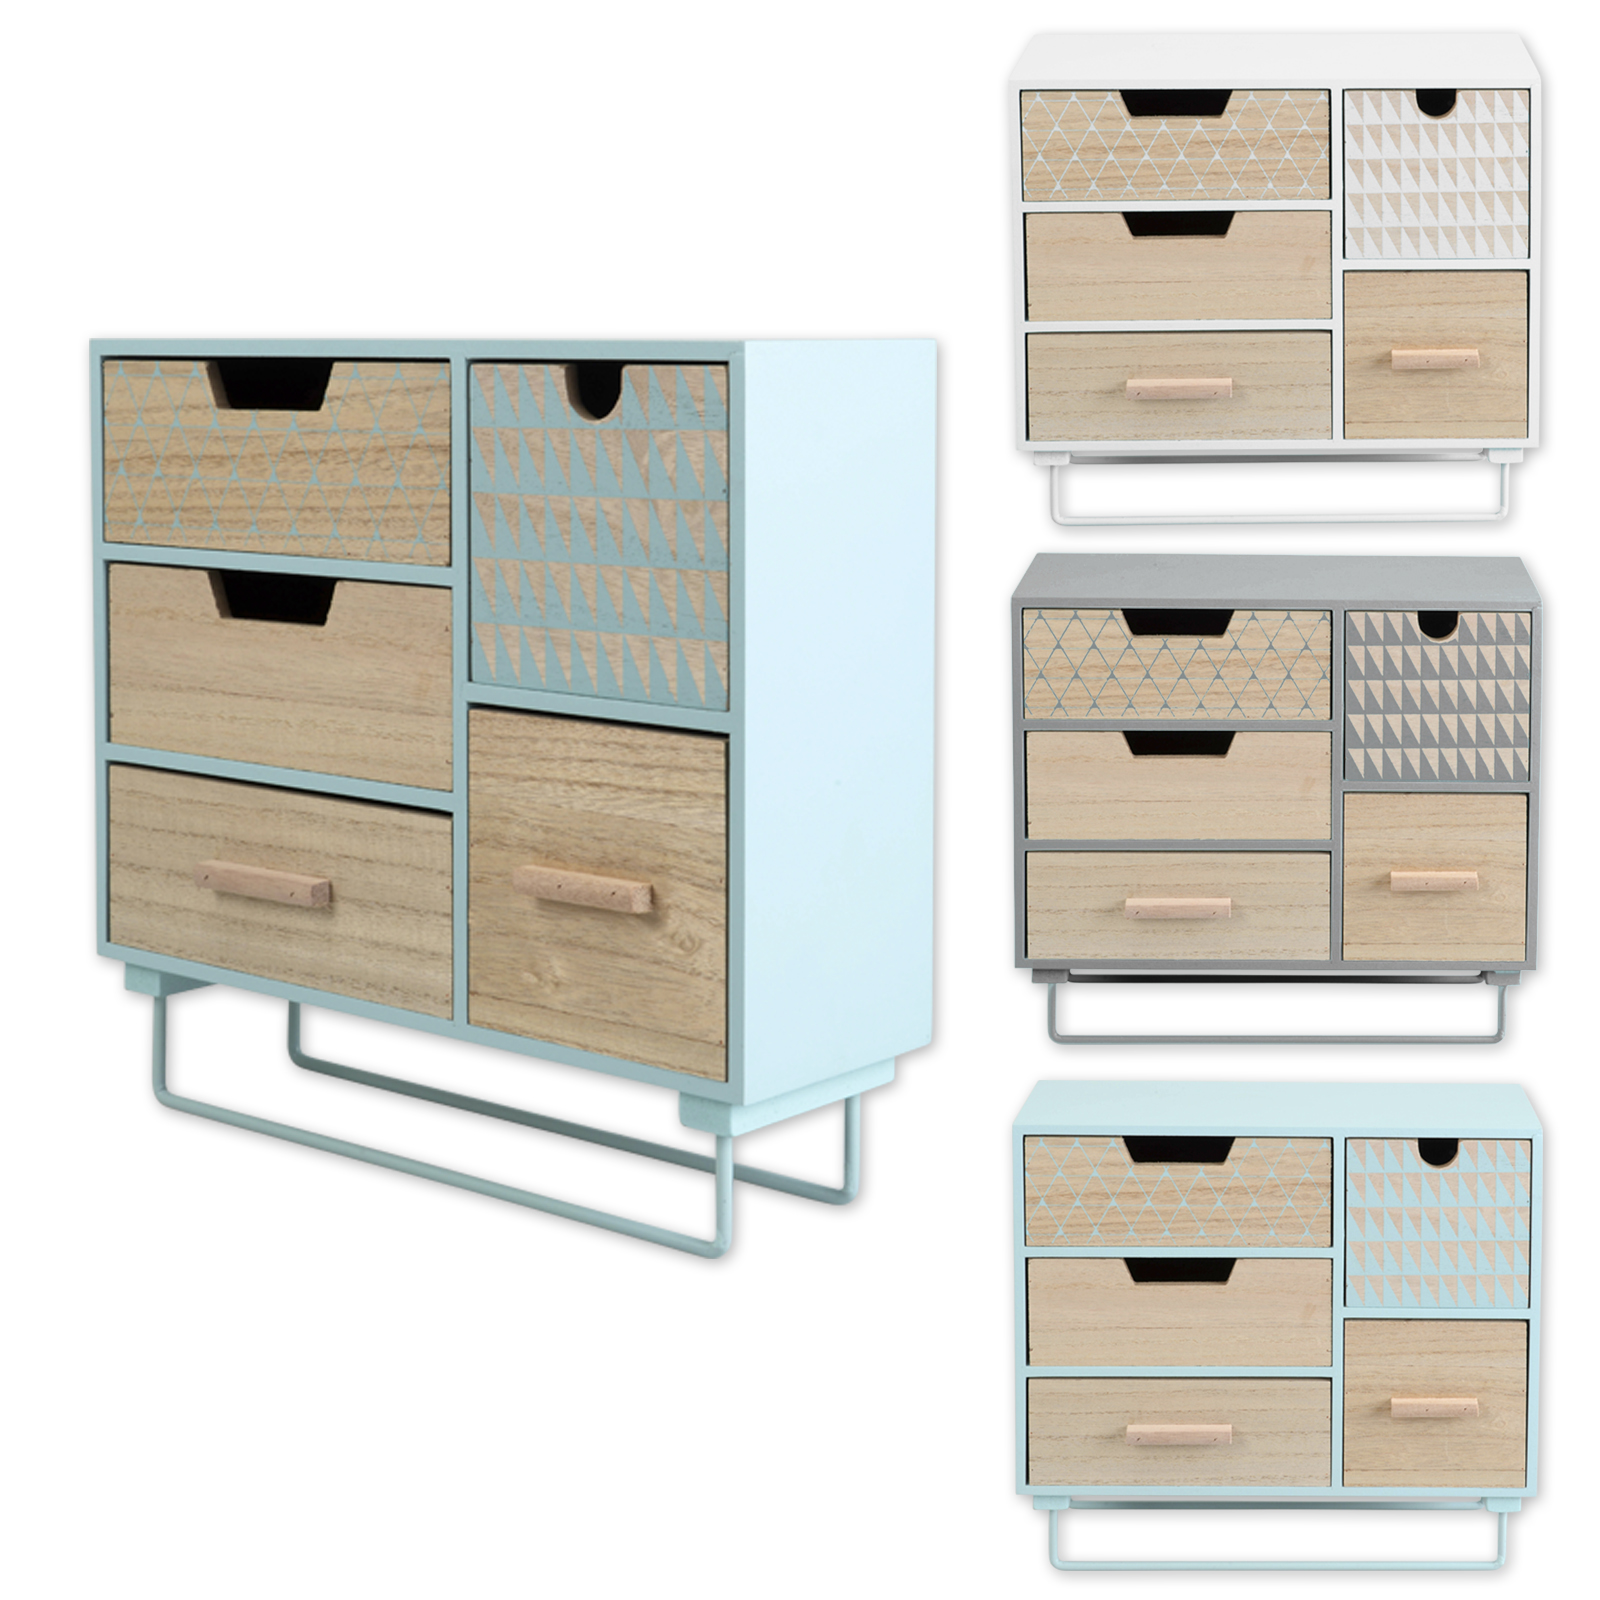 schubladenschrank mini kommode auf standfu schubladen kasten holz bunt shabby ebay. Black Bedroom Furniture Sets. Home Design Ideas